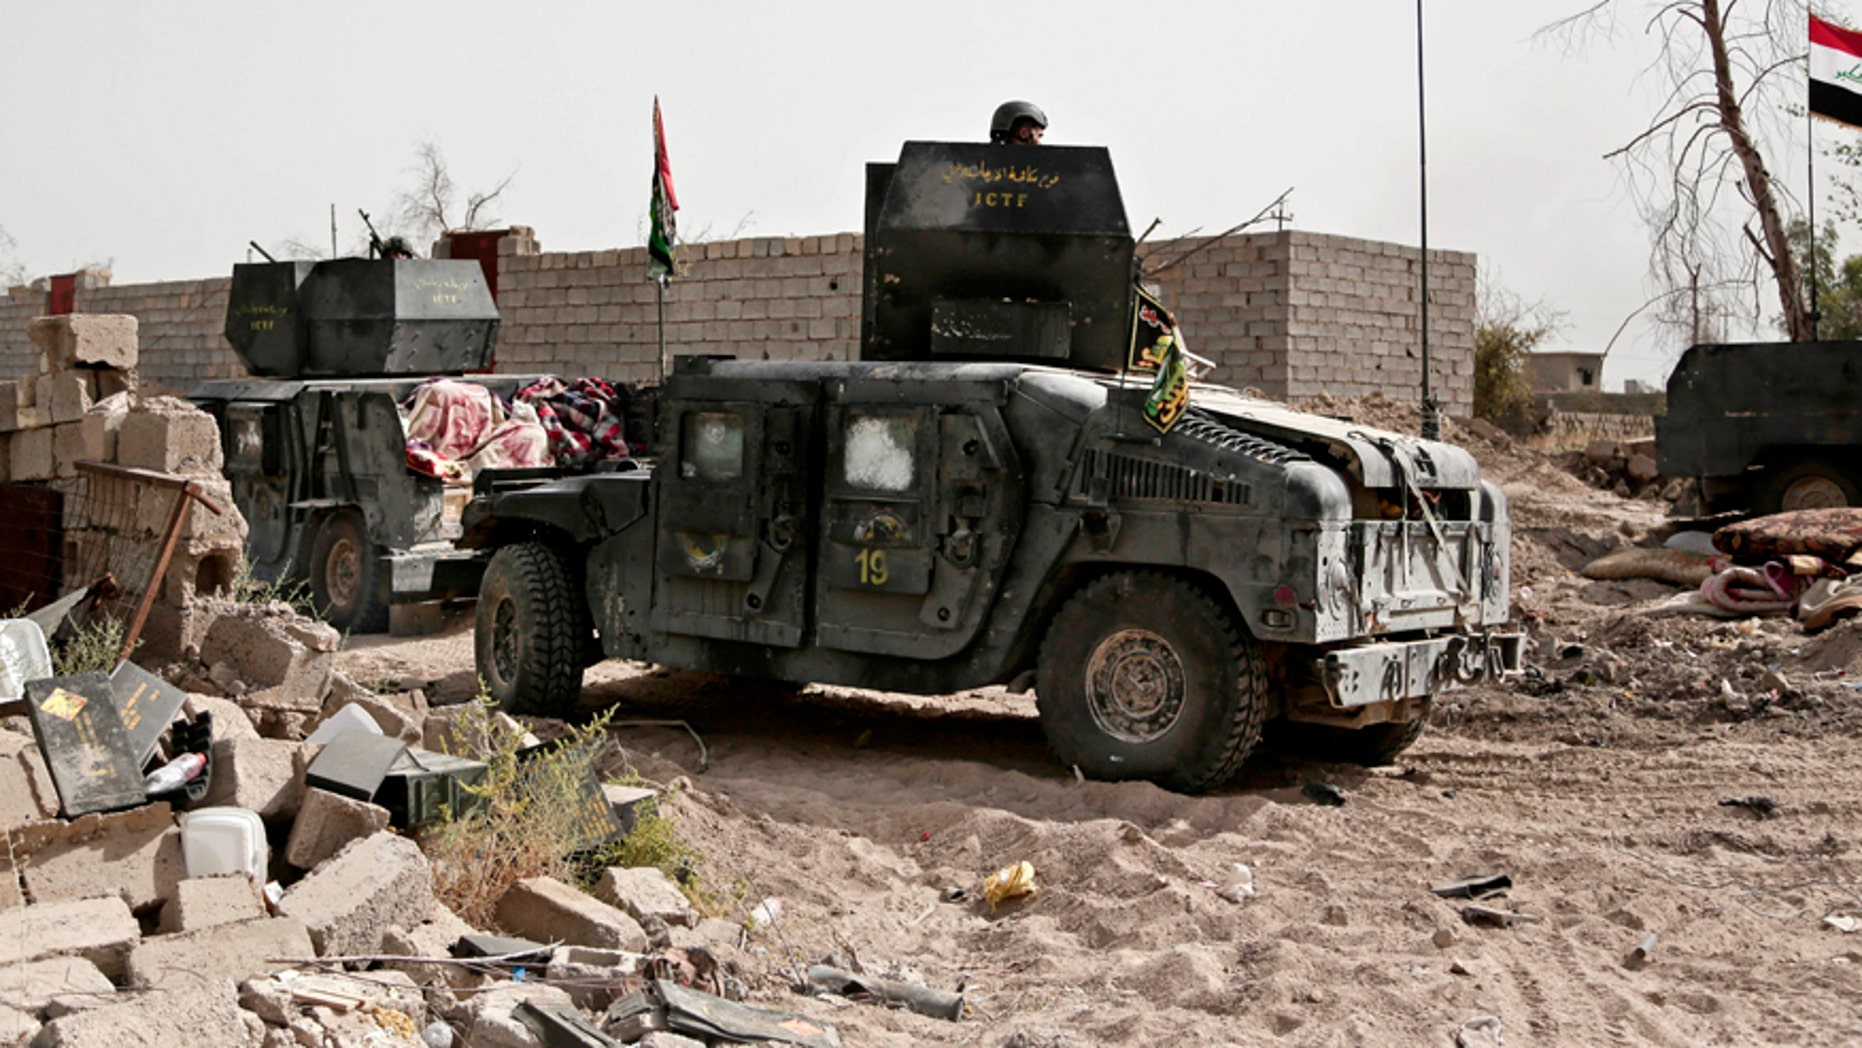 June 8, 2016: Humvees stage on the the edge of the Shuhada neighborhood in Islamic State-held Fallujah, Iraq, just before Iraqi special forces pushed into the district.